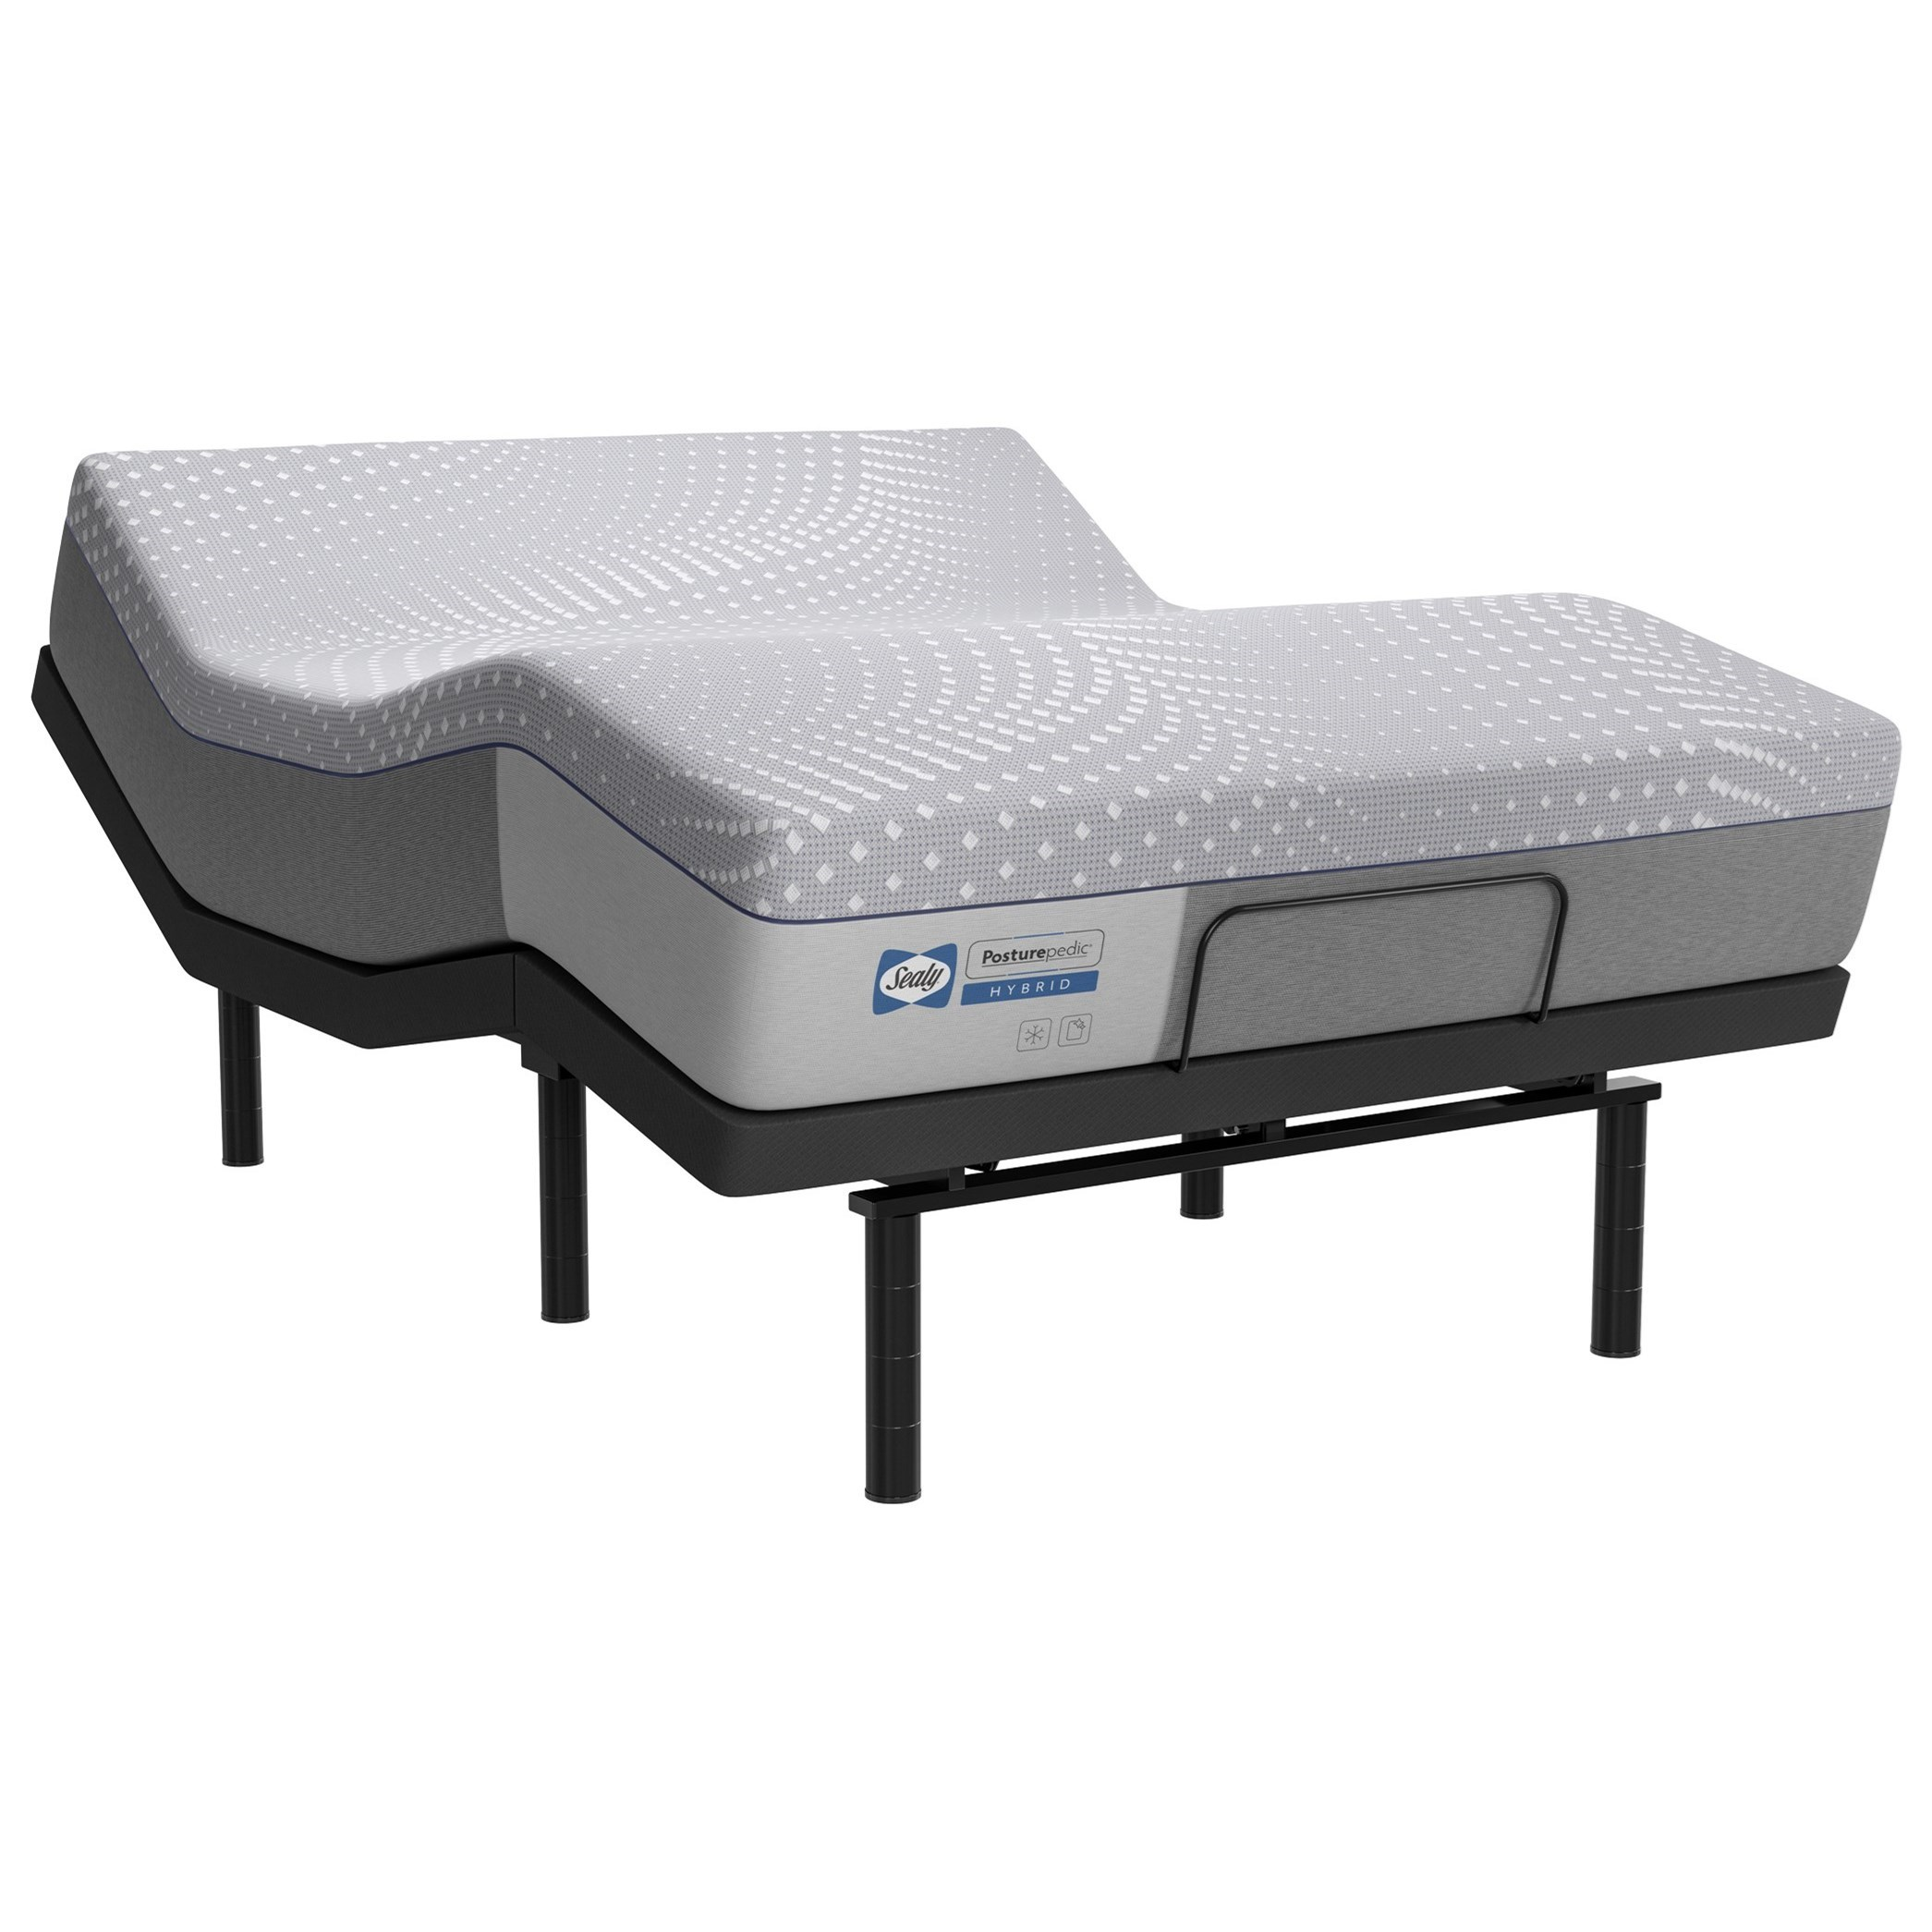 PPH5 Posturpedic Hybrid Firm King Lacey Firm Hybrid Adjustable Set by Sealy at Rife's Home Furniture